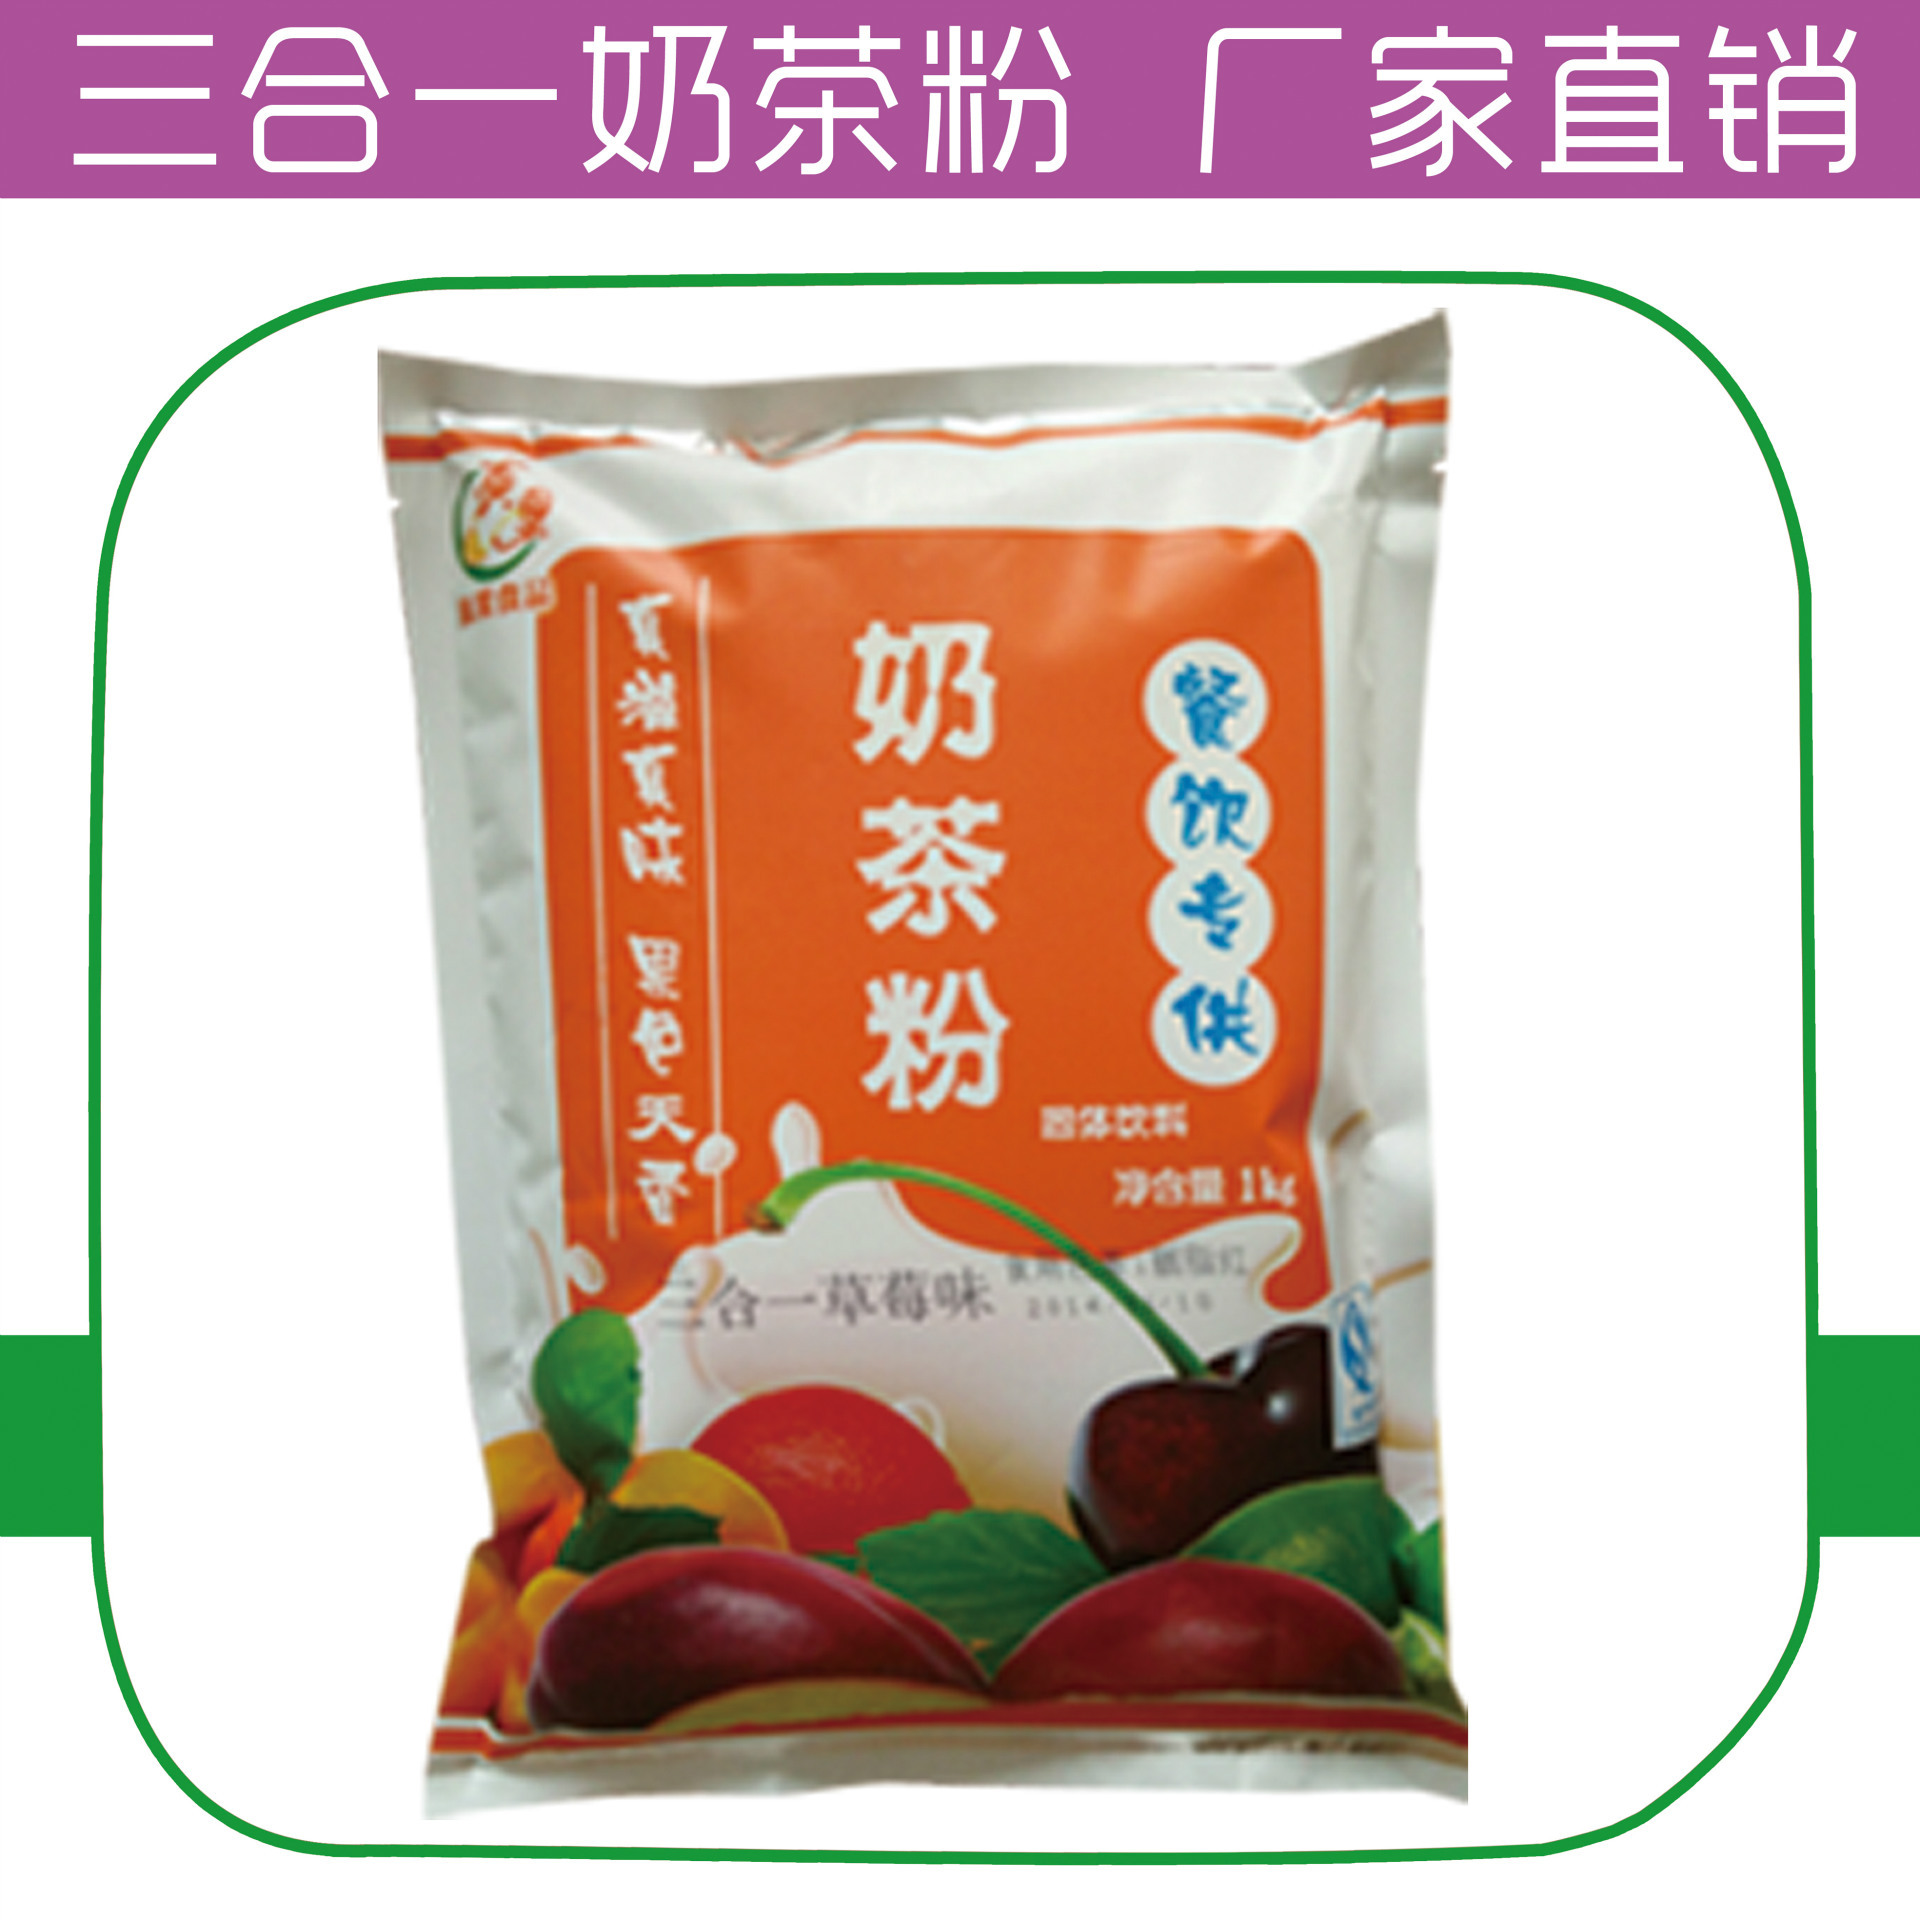 2015 Direct Selling Arrival 1 2 Years Qs Three Coffee Tea Milk Powder Ji nan Shandong